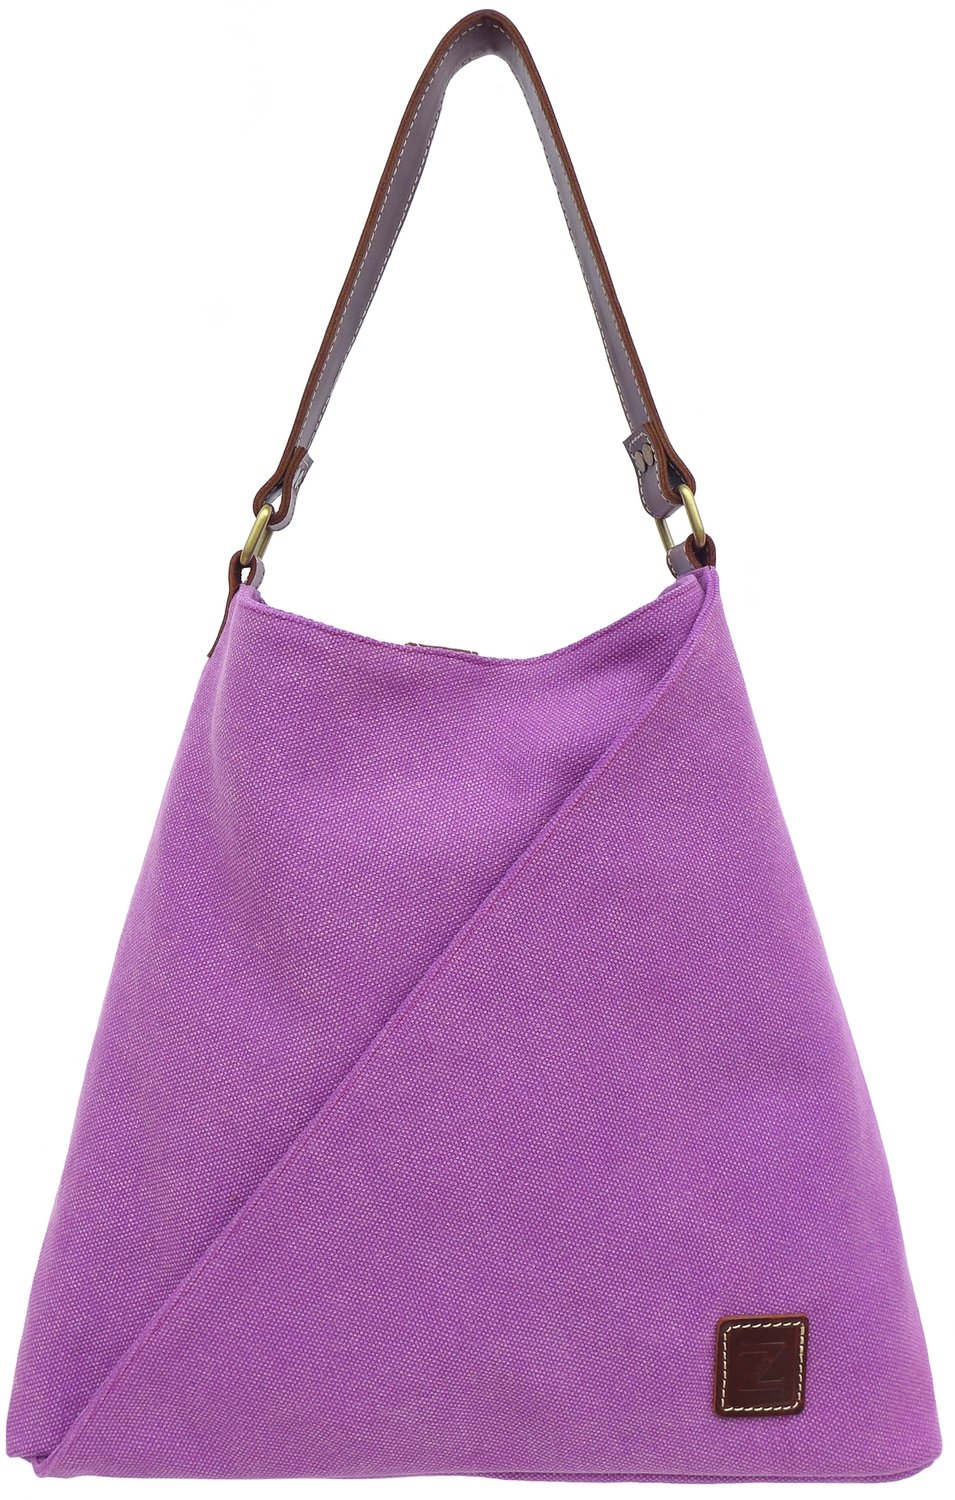 Stone-washed canvas and leather tote (orchid)